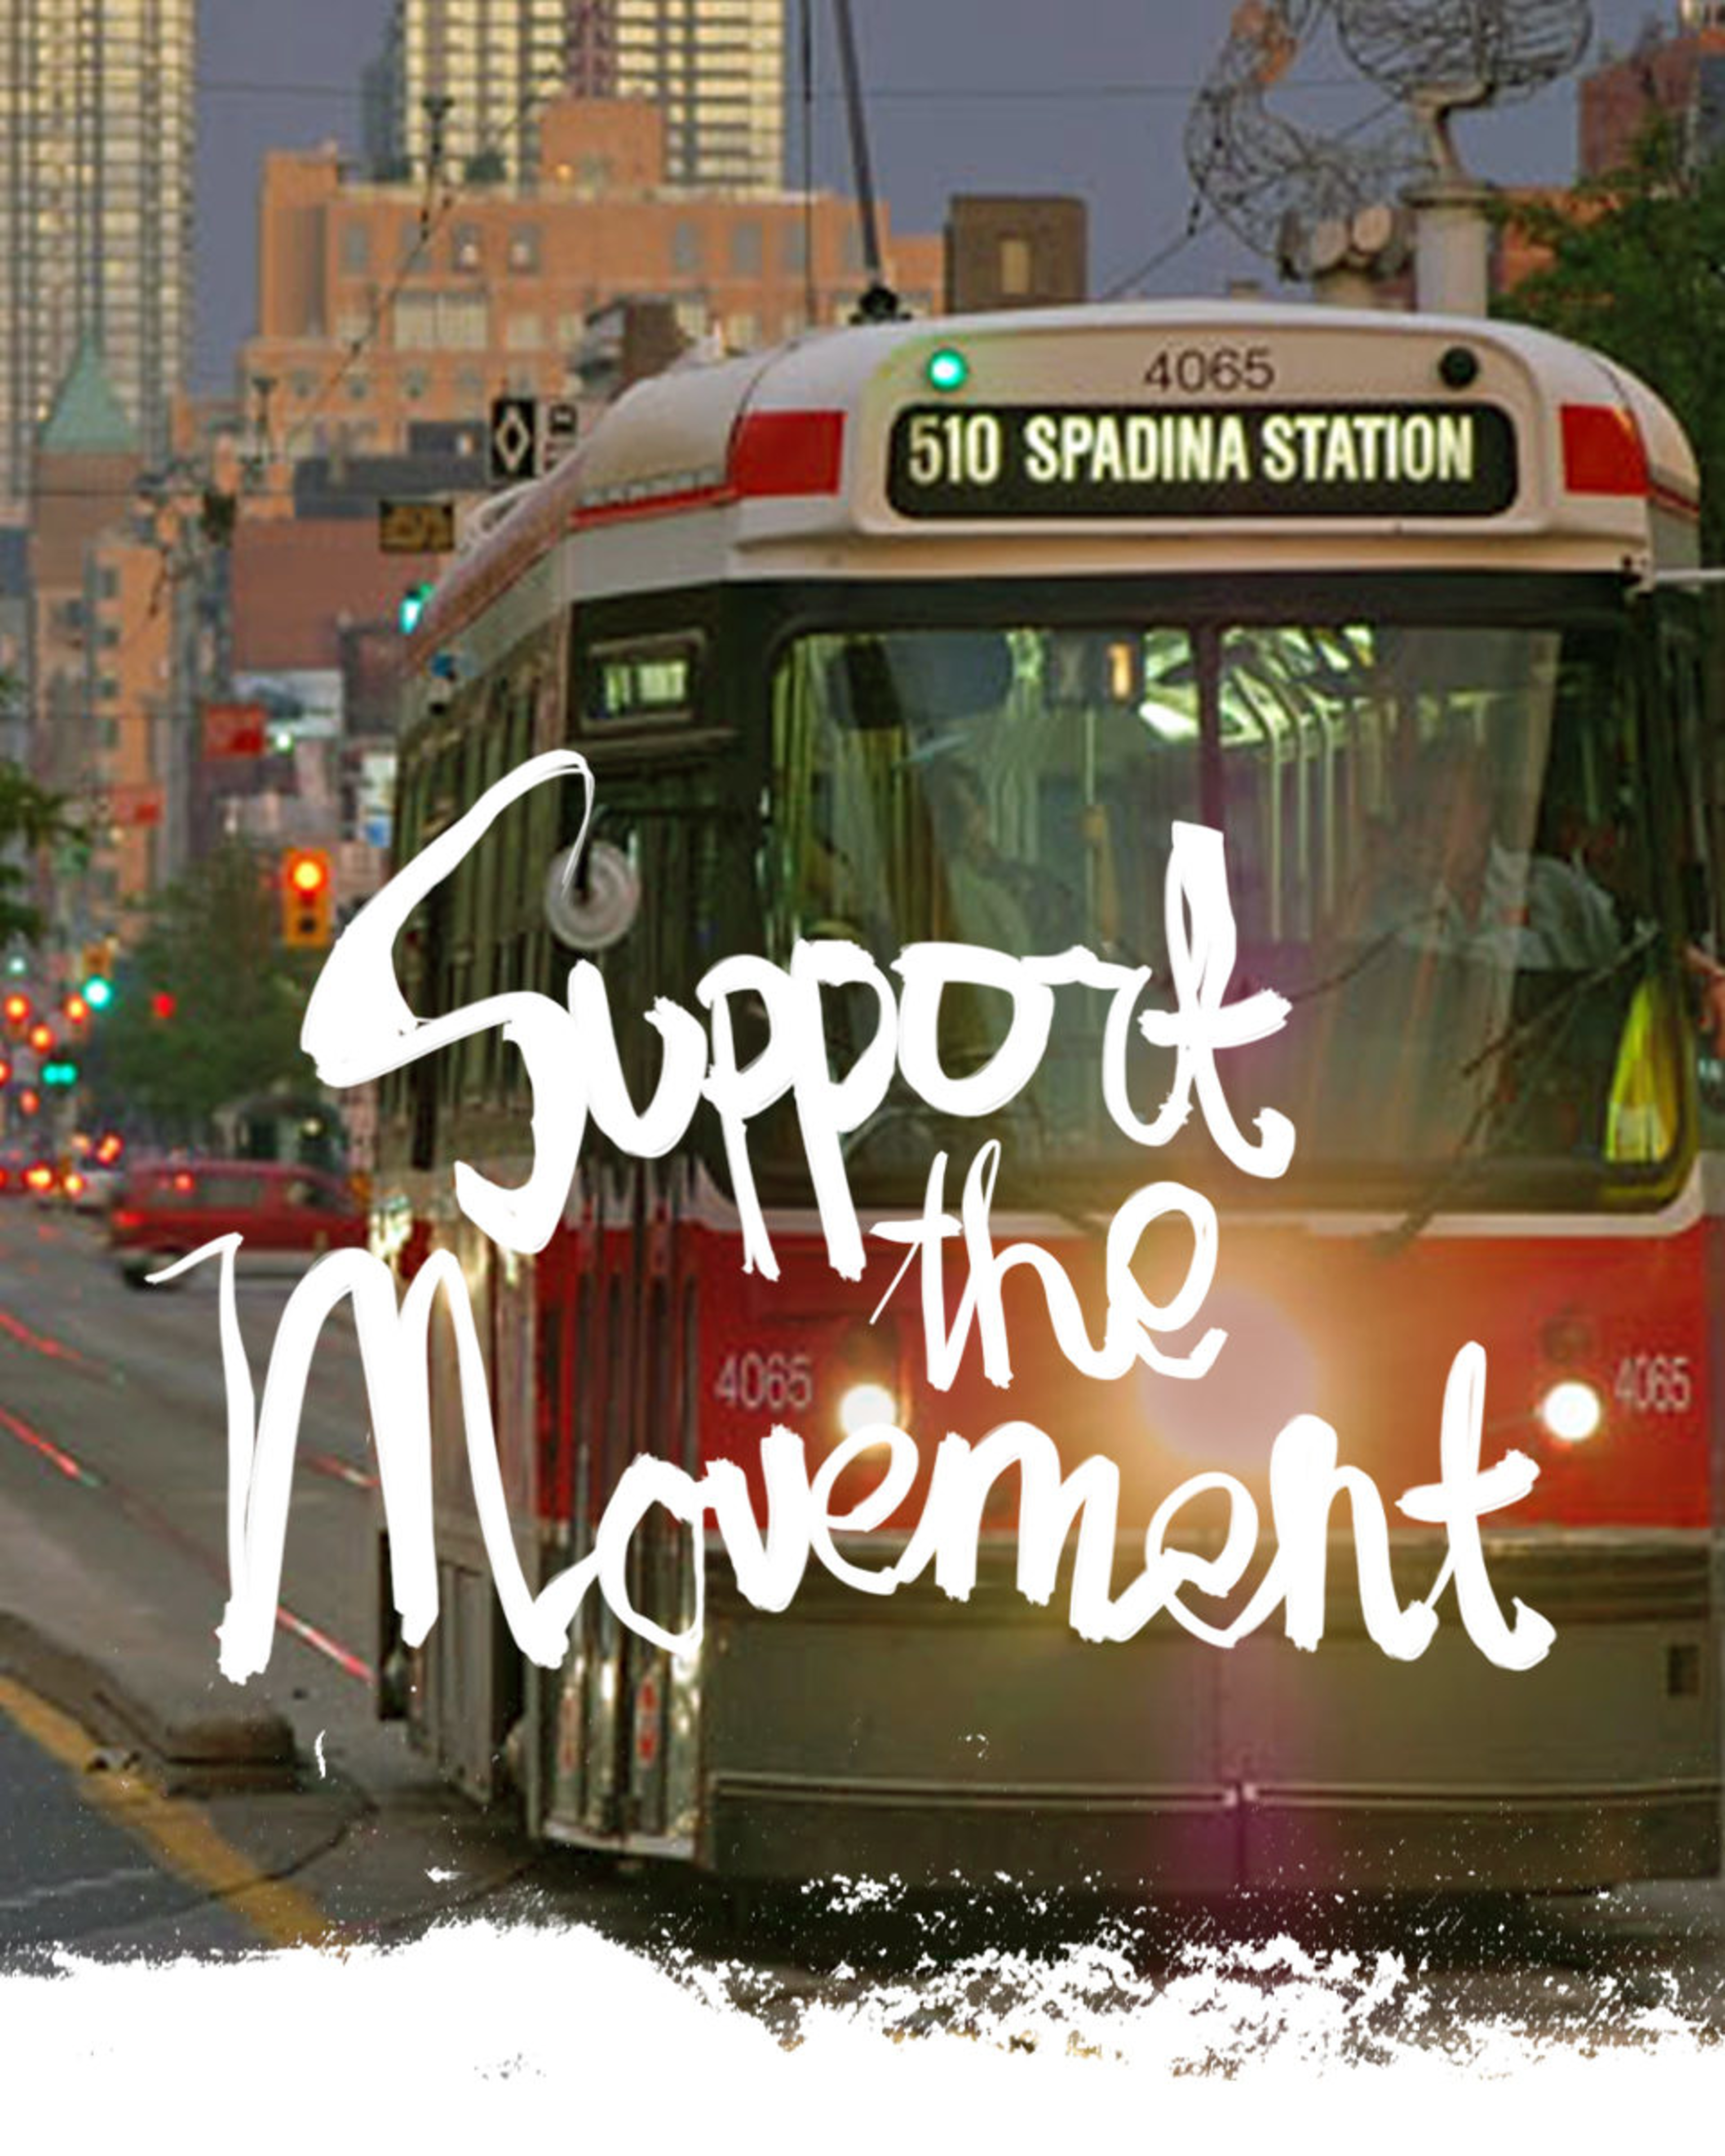 Image of Toronto streetcar on Spadina Avenue with 'Support the movement' written in handwritten script ontop